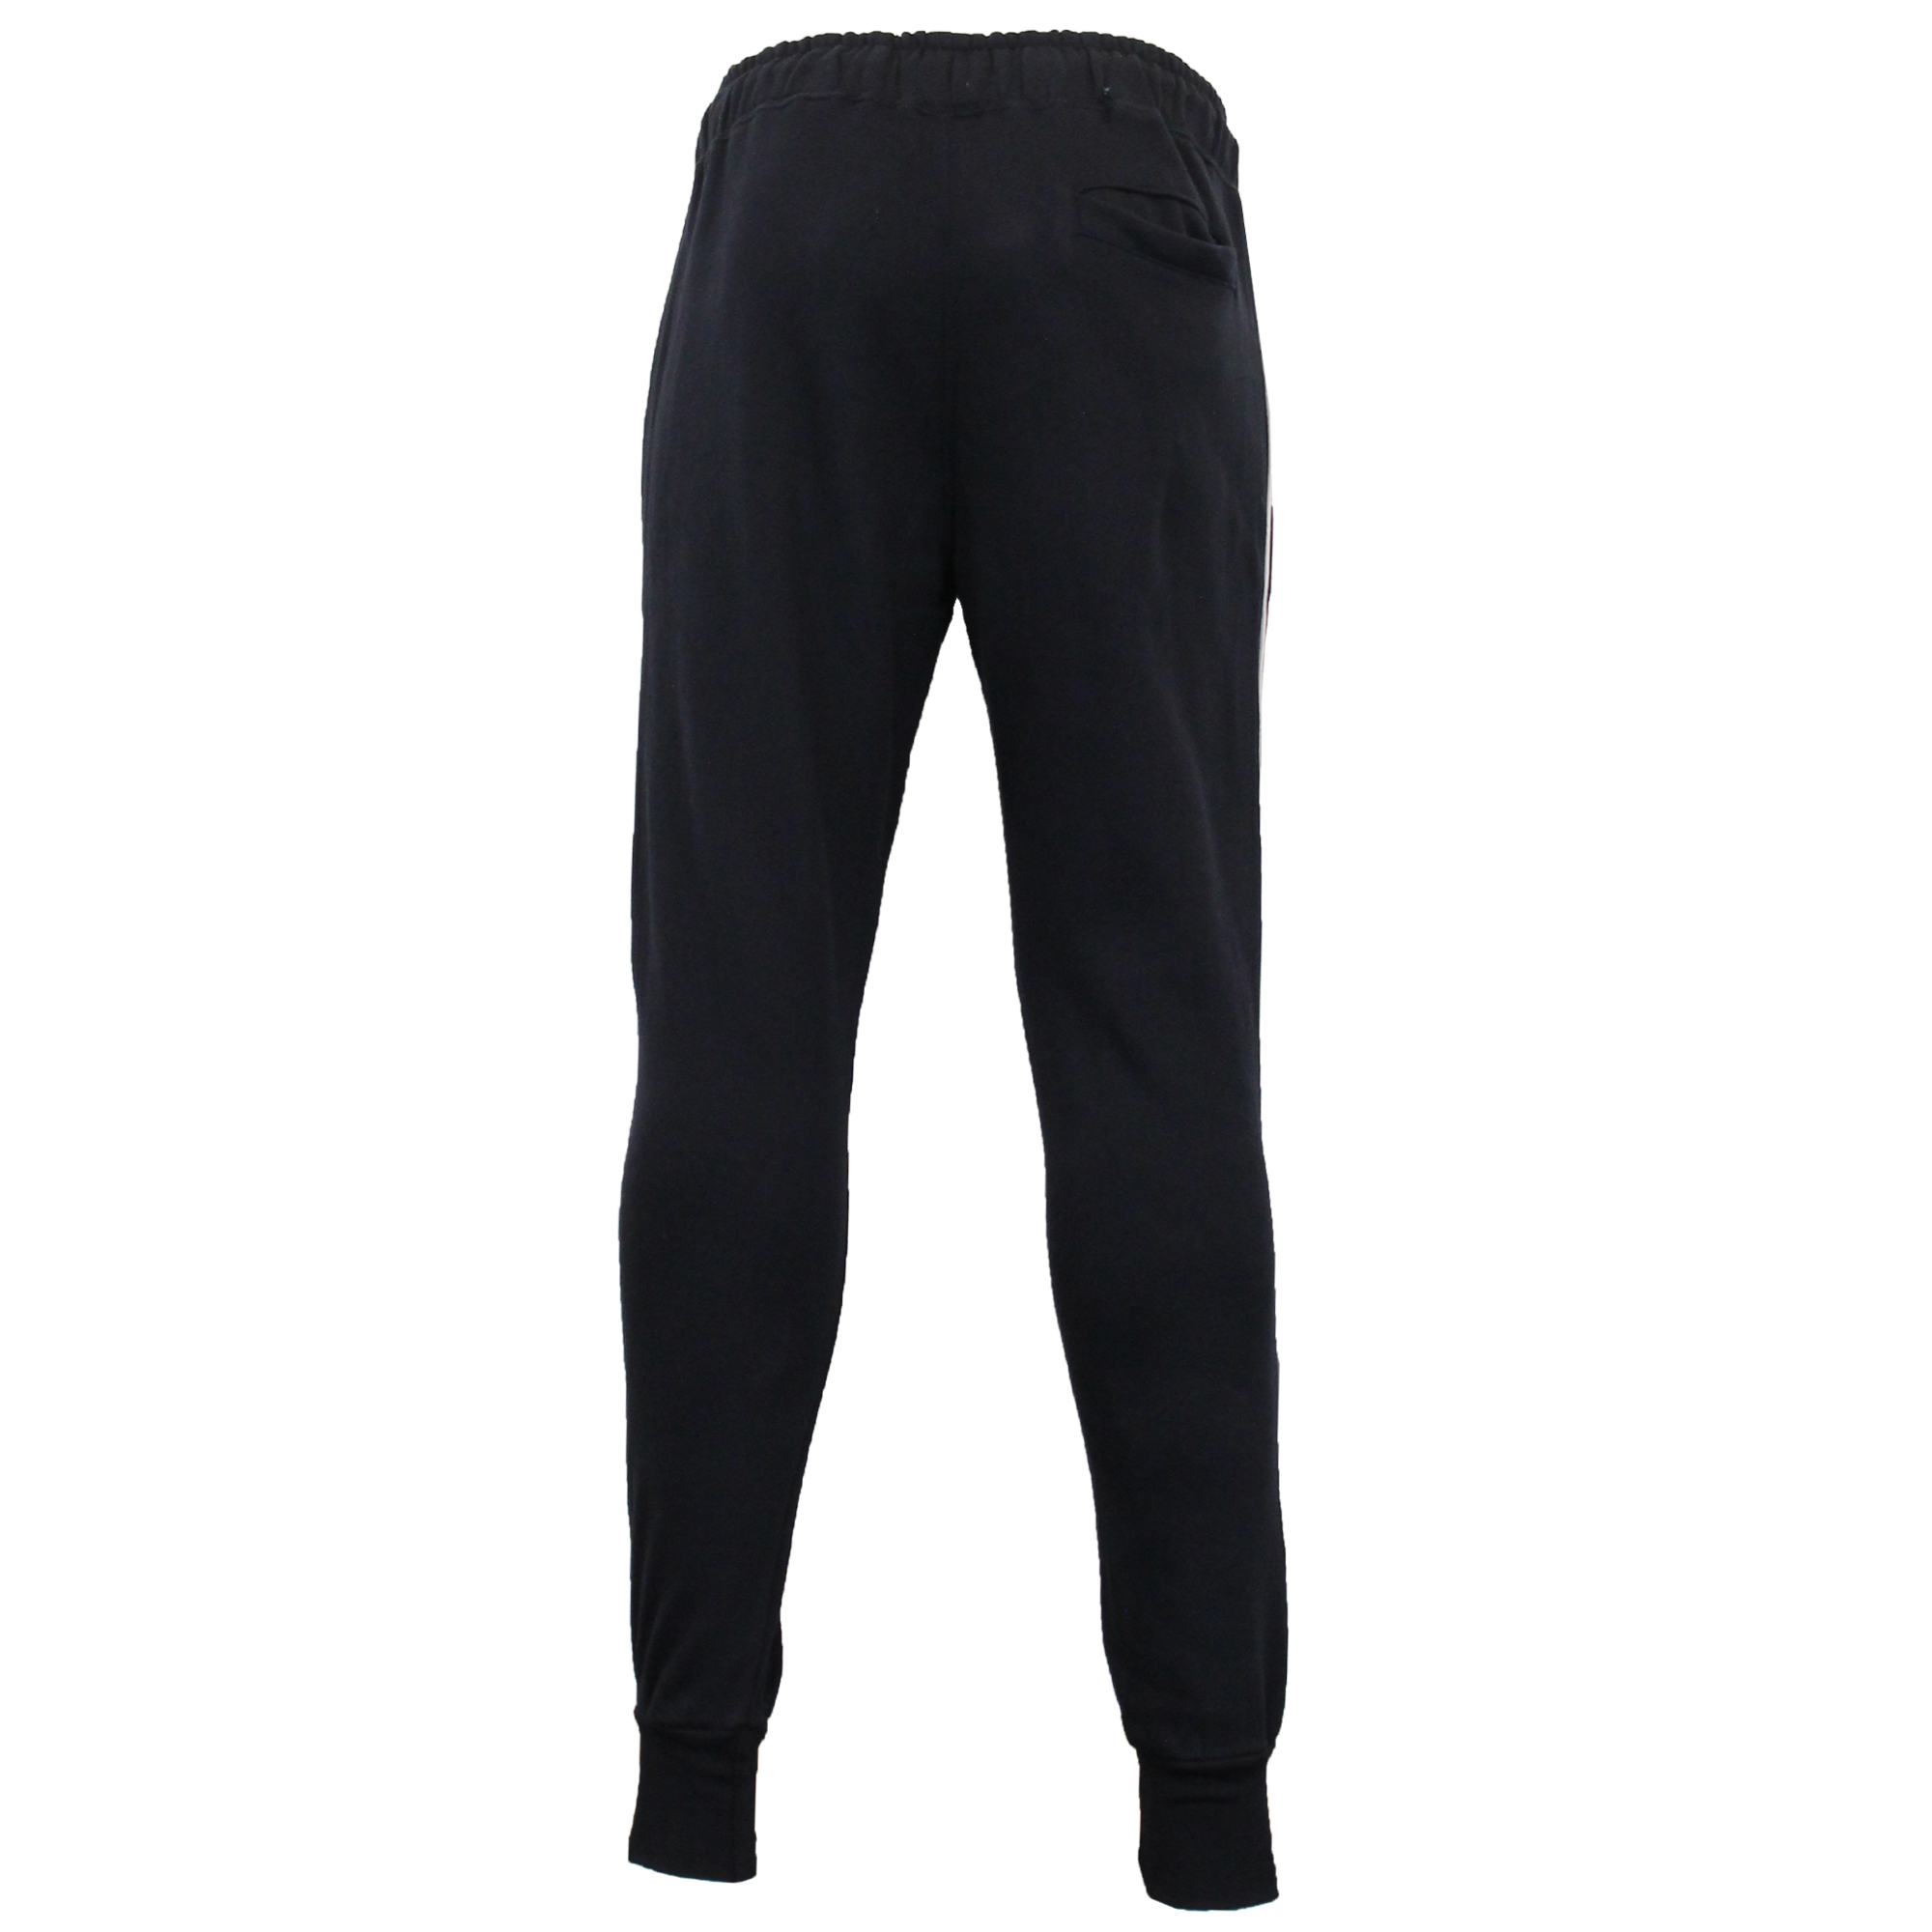 Mens Bottoms Brave Soul Skinny Fit Running Joggers Fleece Lined Casual Winter